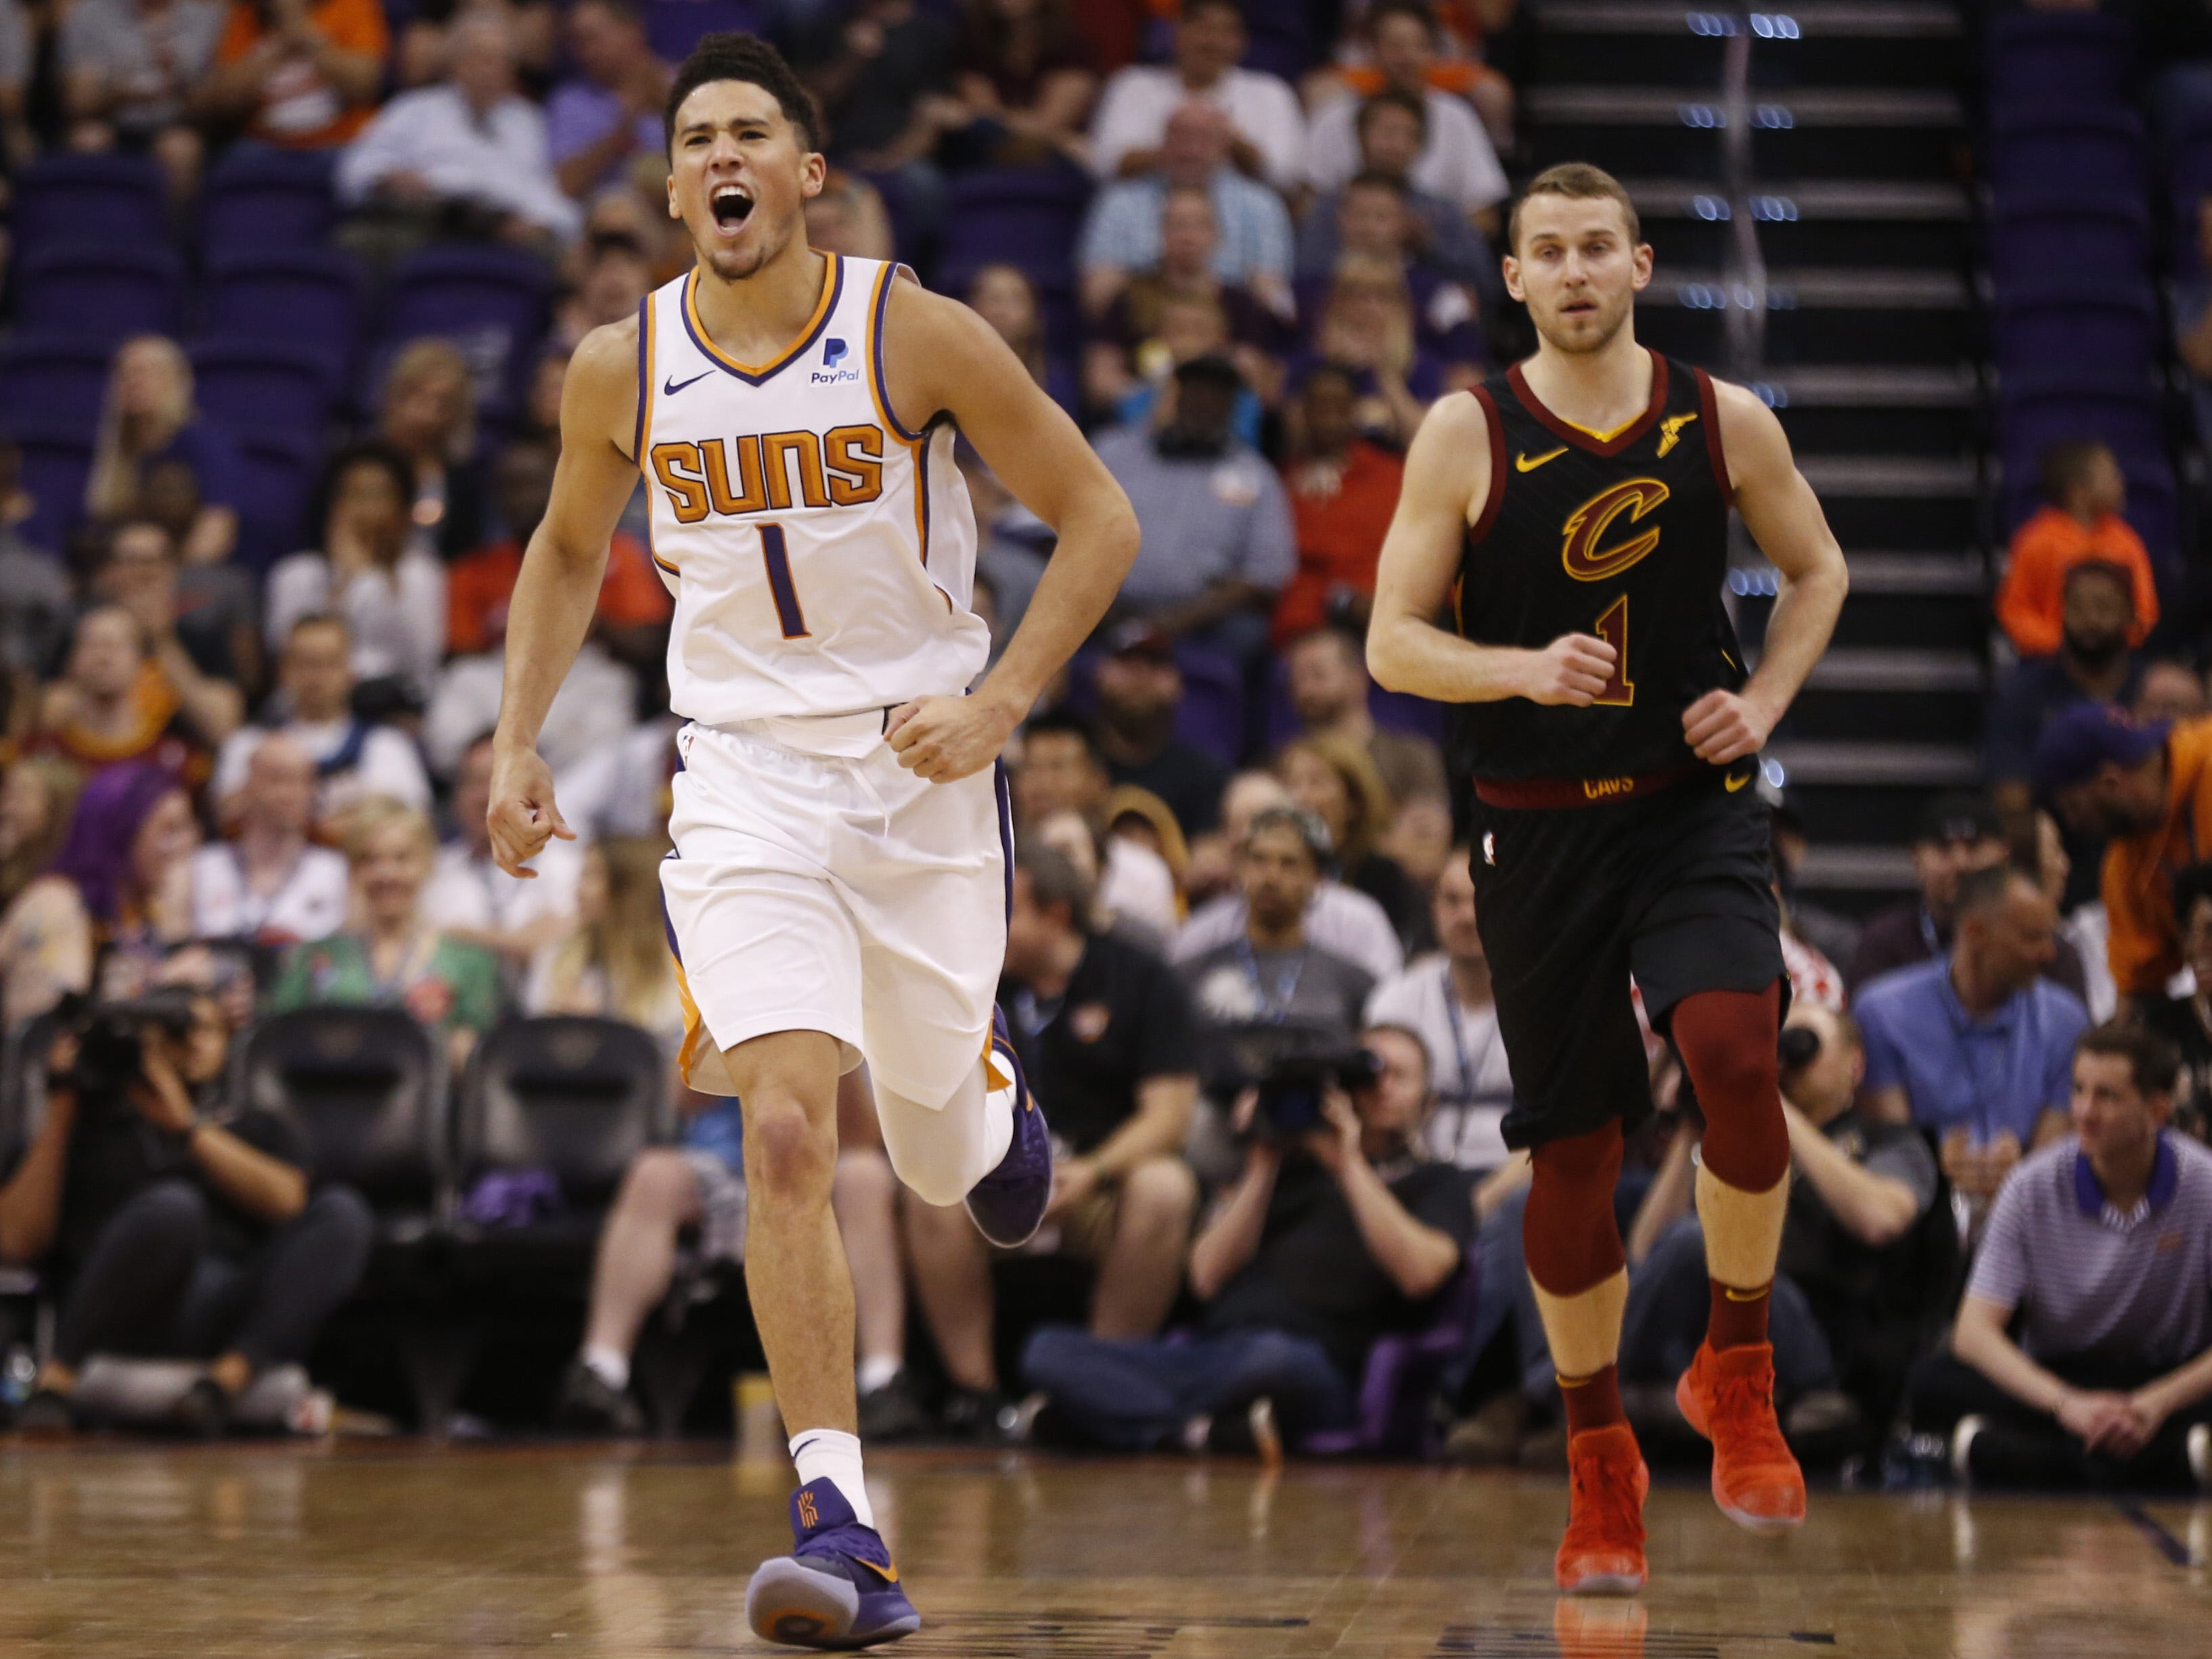 Suns' Devin Booker (1) celebrates a basket against the Cavaliers during the fourth quarter at Talking Stick Resort Arena in Phoenix, Ariz. on April 1, 2019.